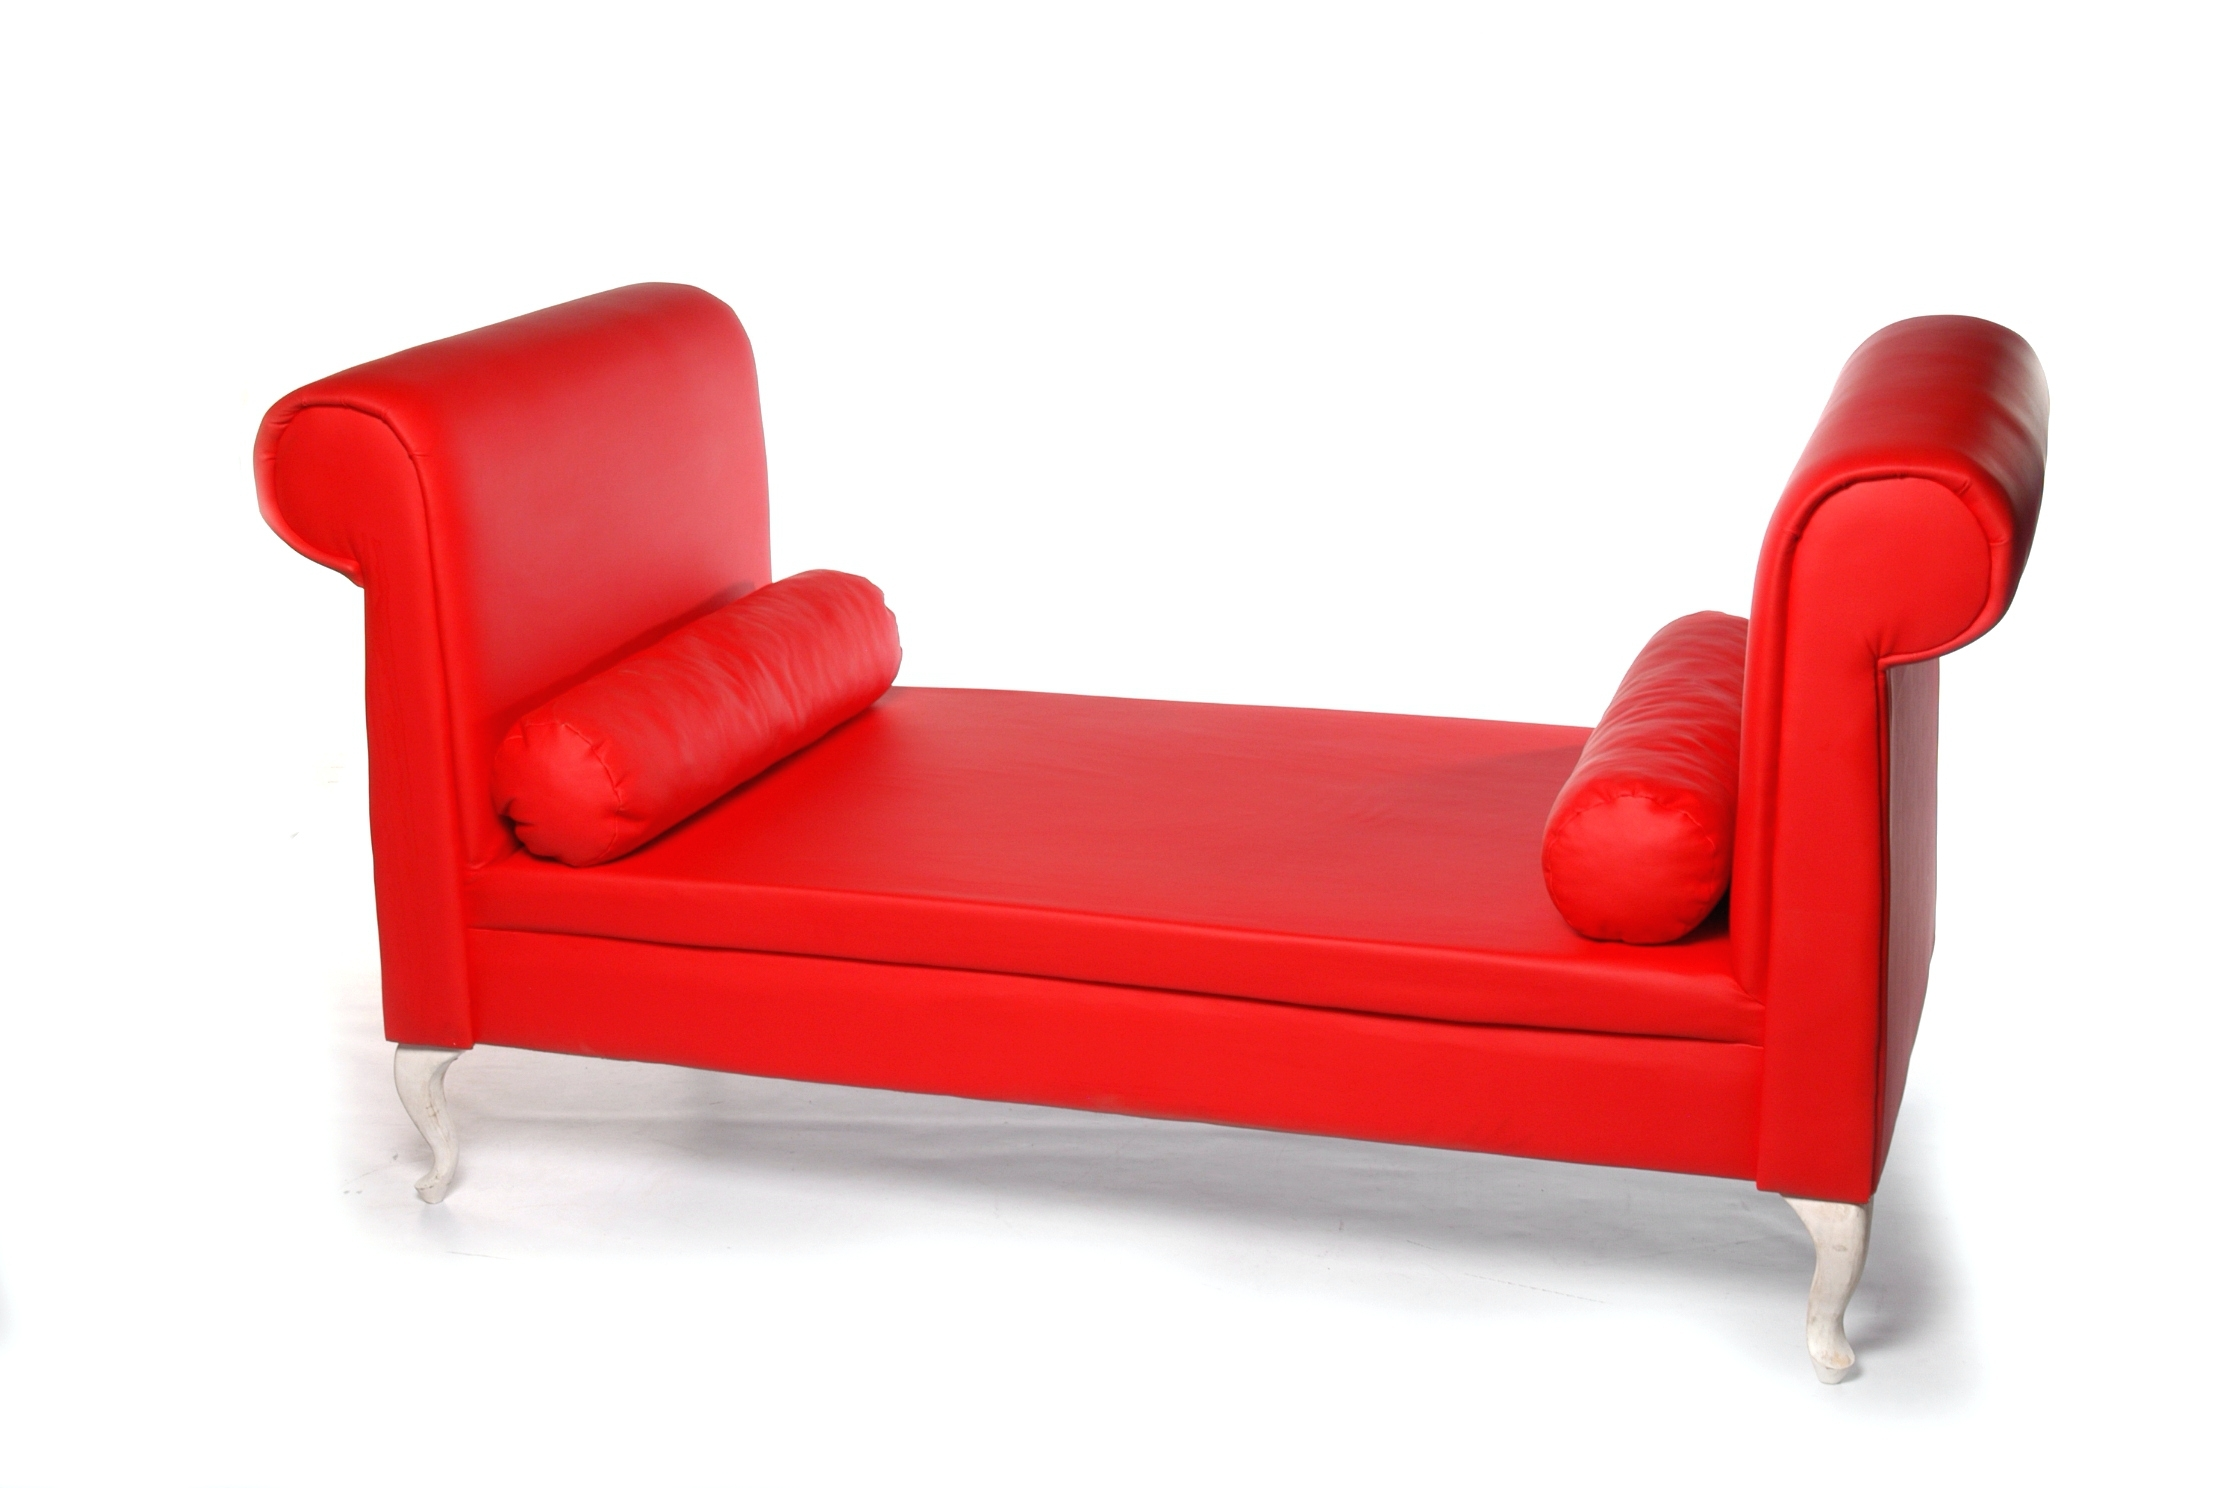 Recent Double Arm Chaise Lounge Contemporary Chair Slipcovers With Arms Intended For Chaises With Arms (View 14 of 15)